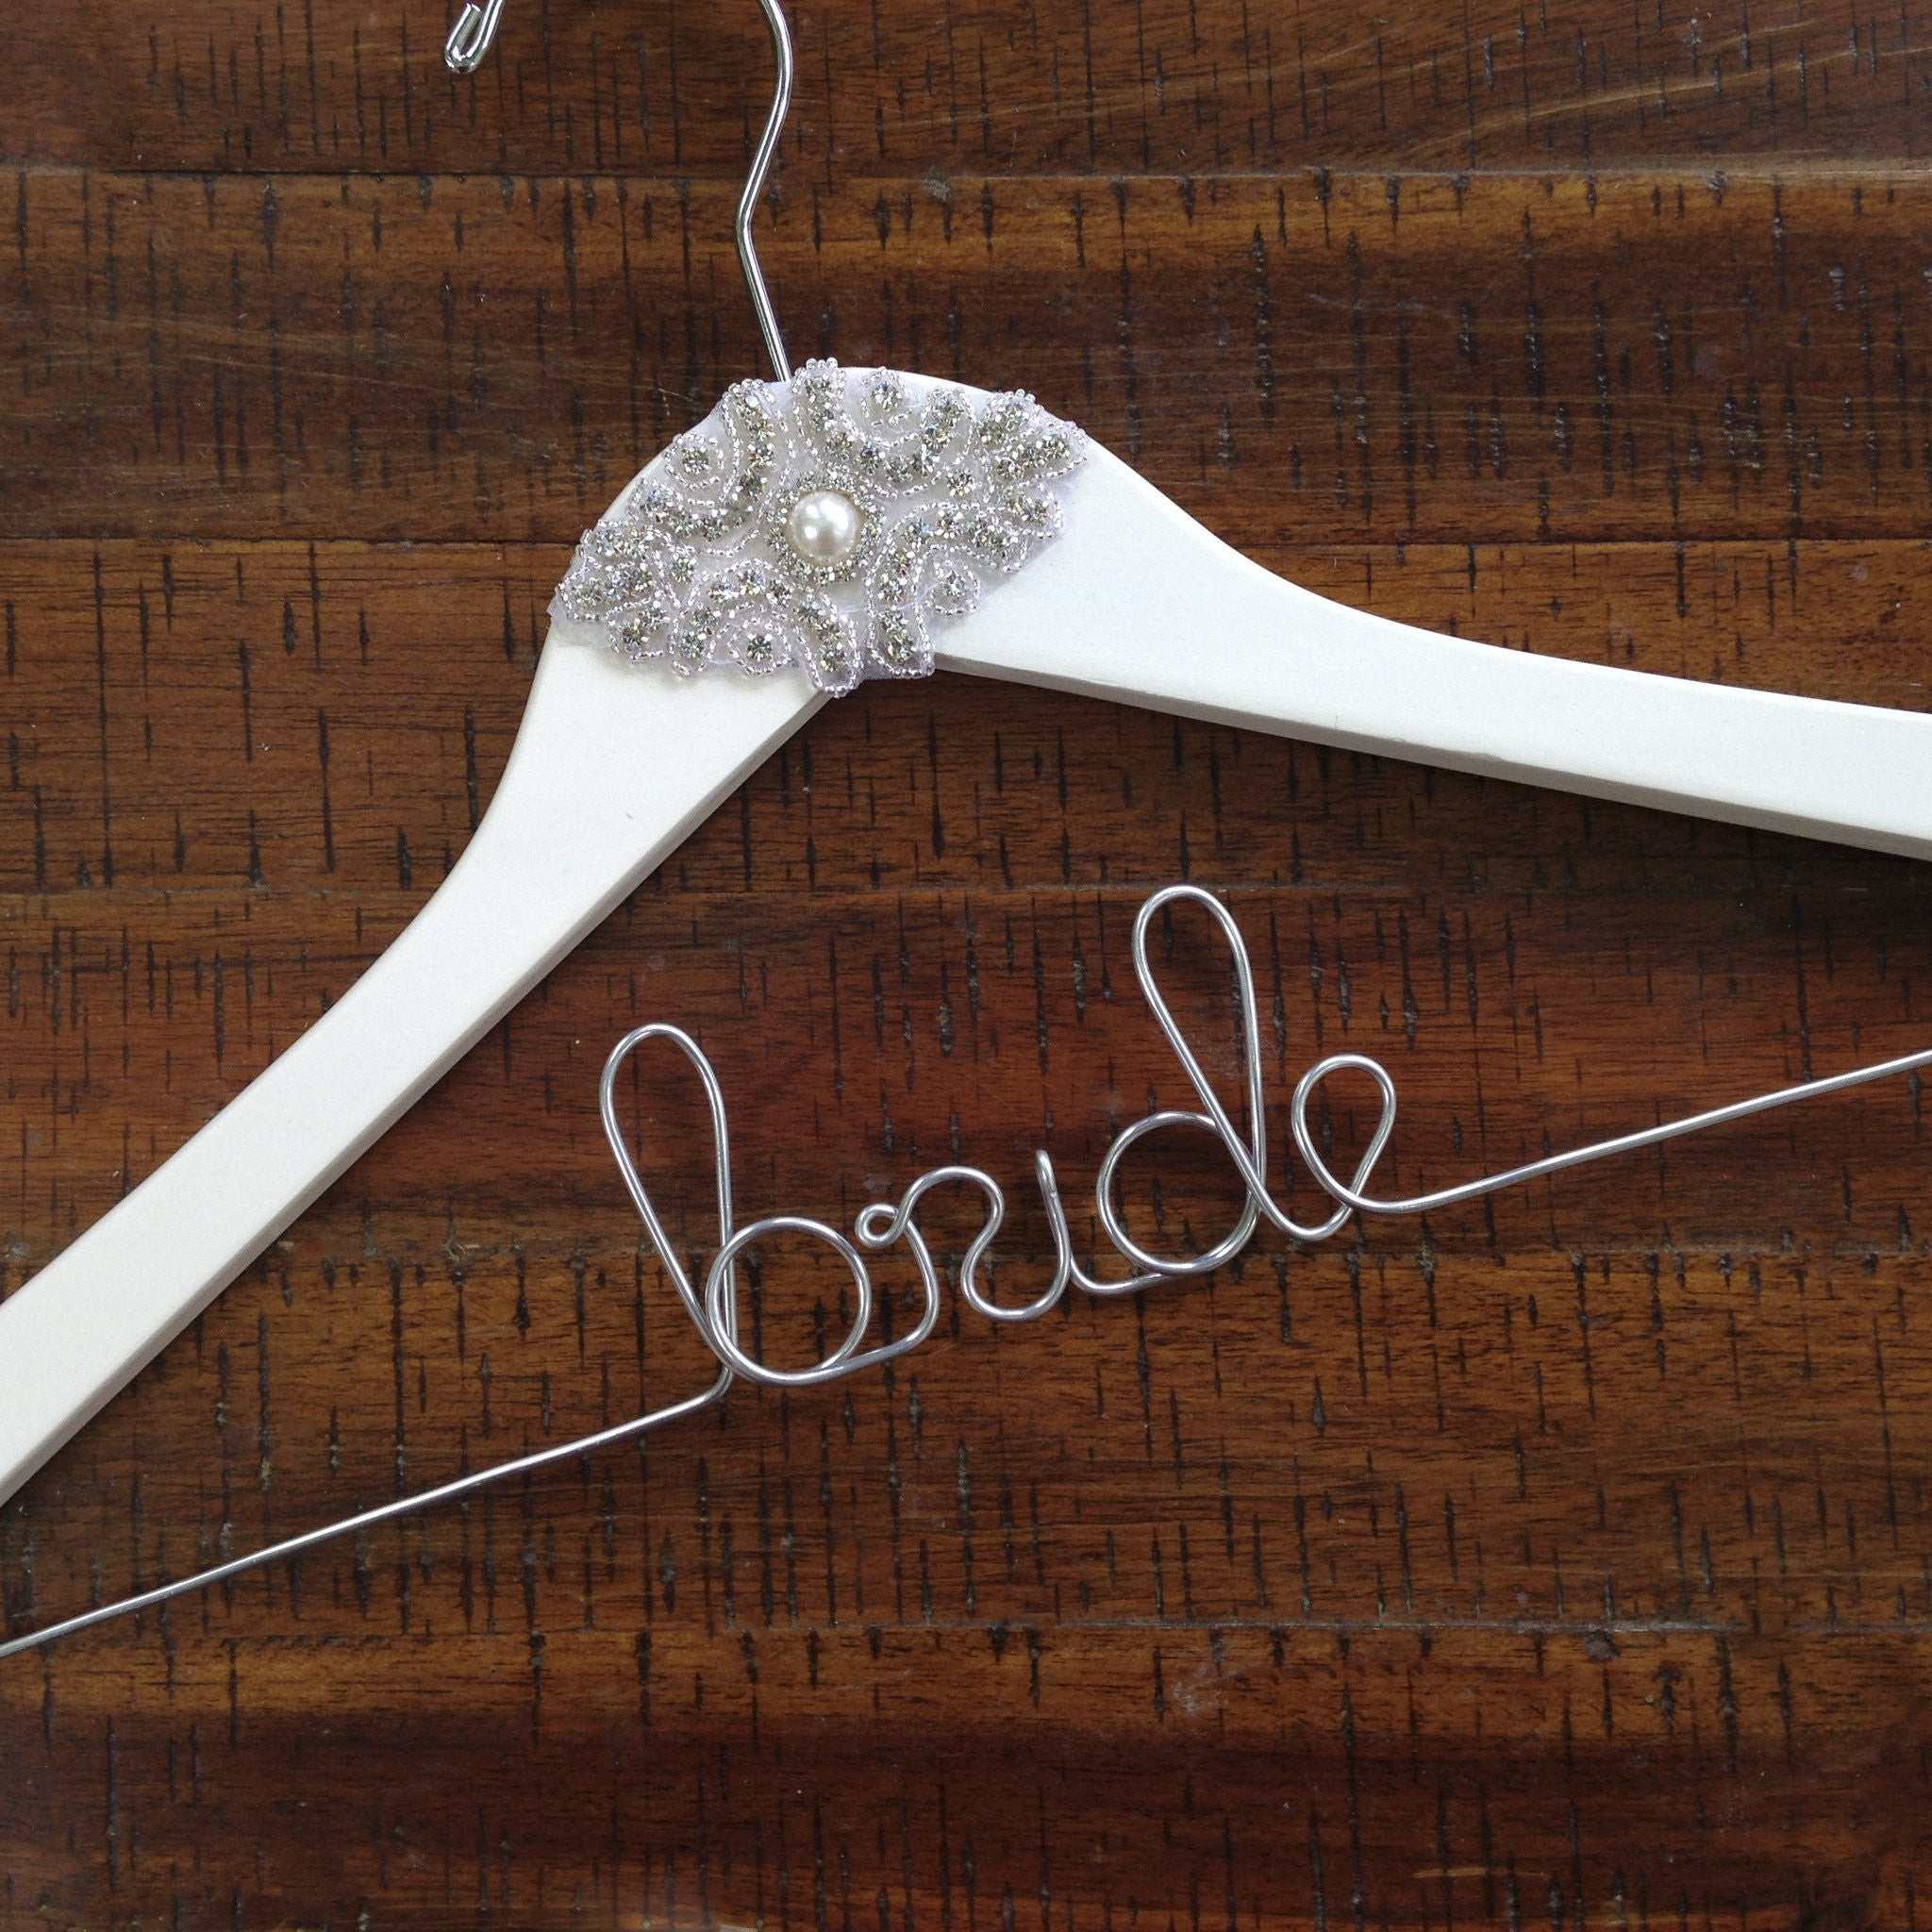 bridal dress hanger with rhinestone applique wedding hangers personalized wedding dress hangers bridal shower gifts Gatsby wedding